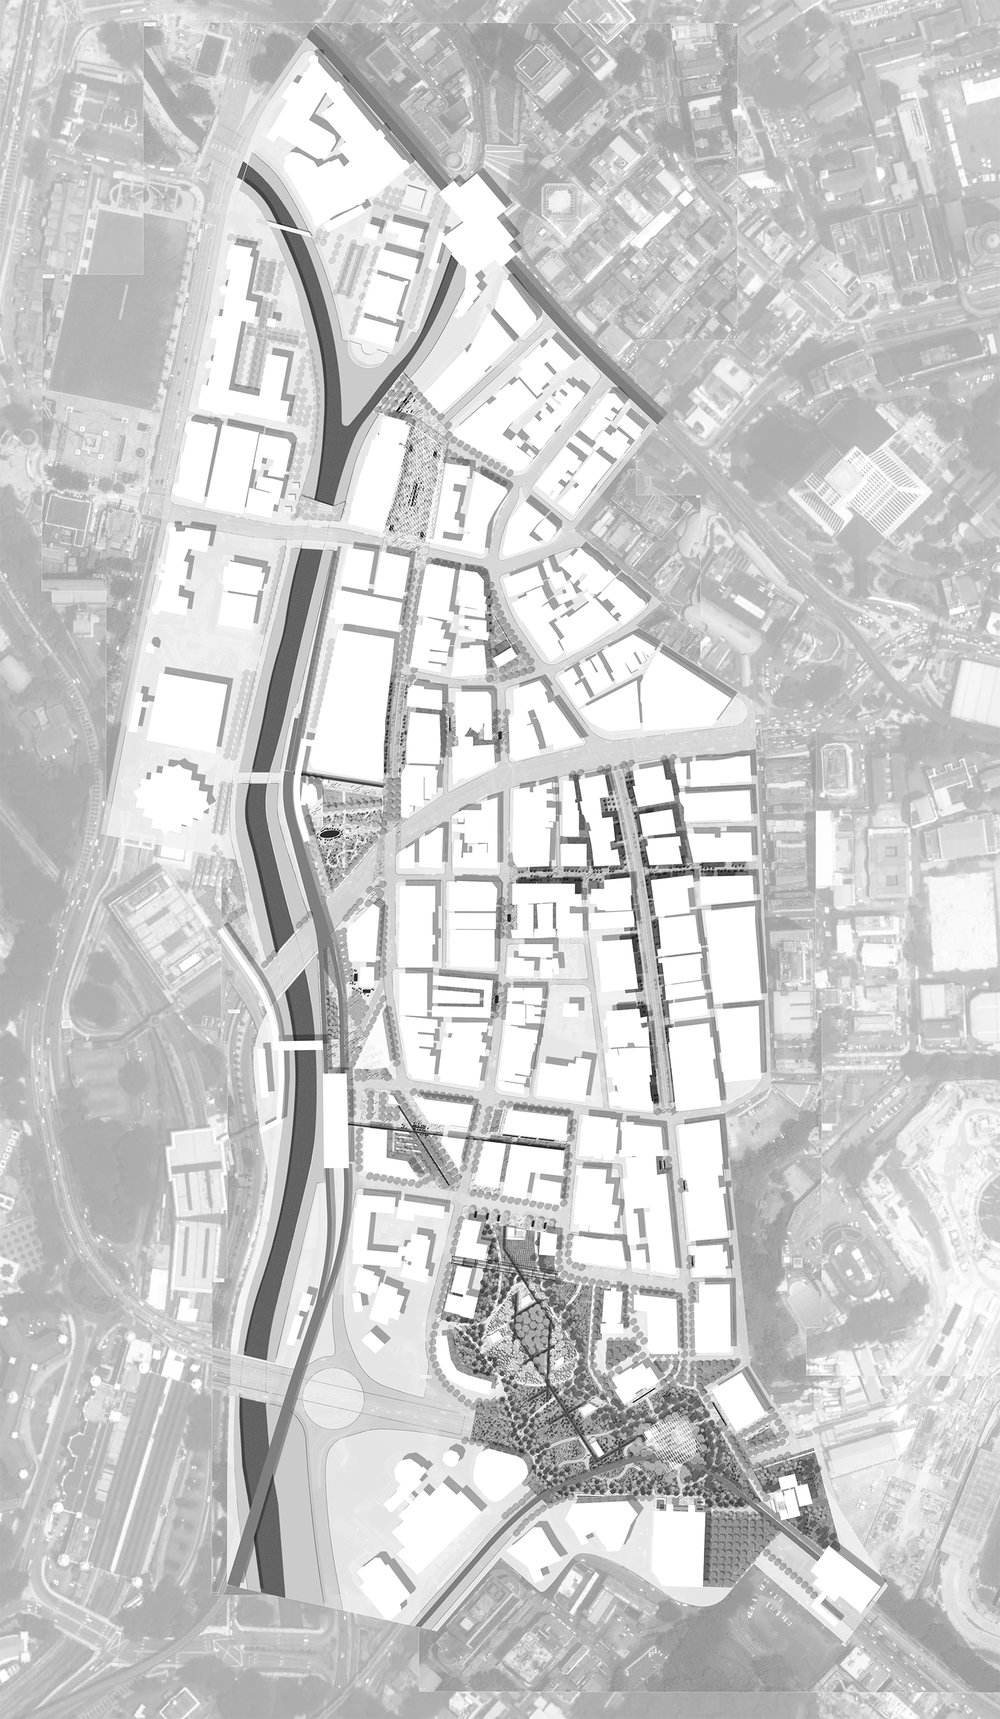 KL_Chinatown_IllustrativePlan _ aerial.jpg